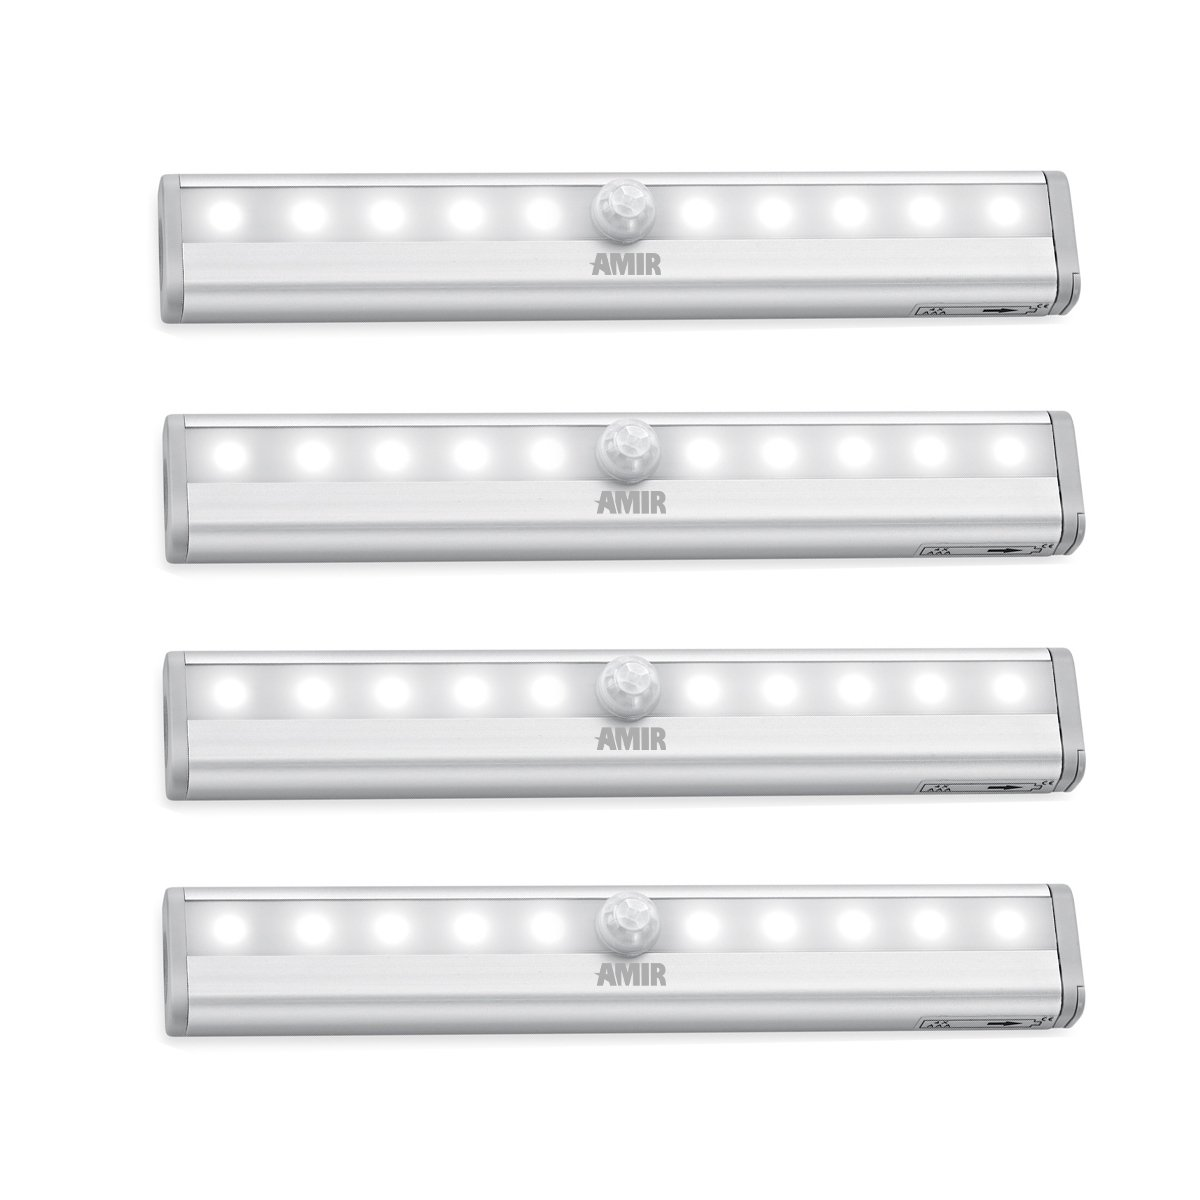 AMIR 10 LED Motion Sensing Closet Lights, DIY Stick-on Anywhere Portable 10-LED Wireless Cabinet Night/Stairs Light Bar with Magnetic Strip, Puck Lights (Battery Operated - 4 Pack)